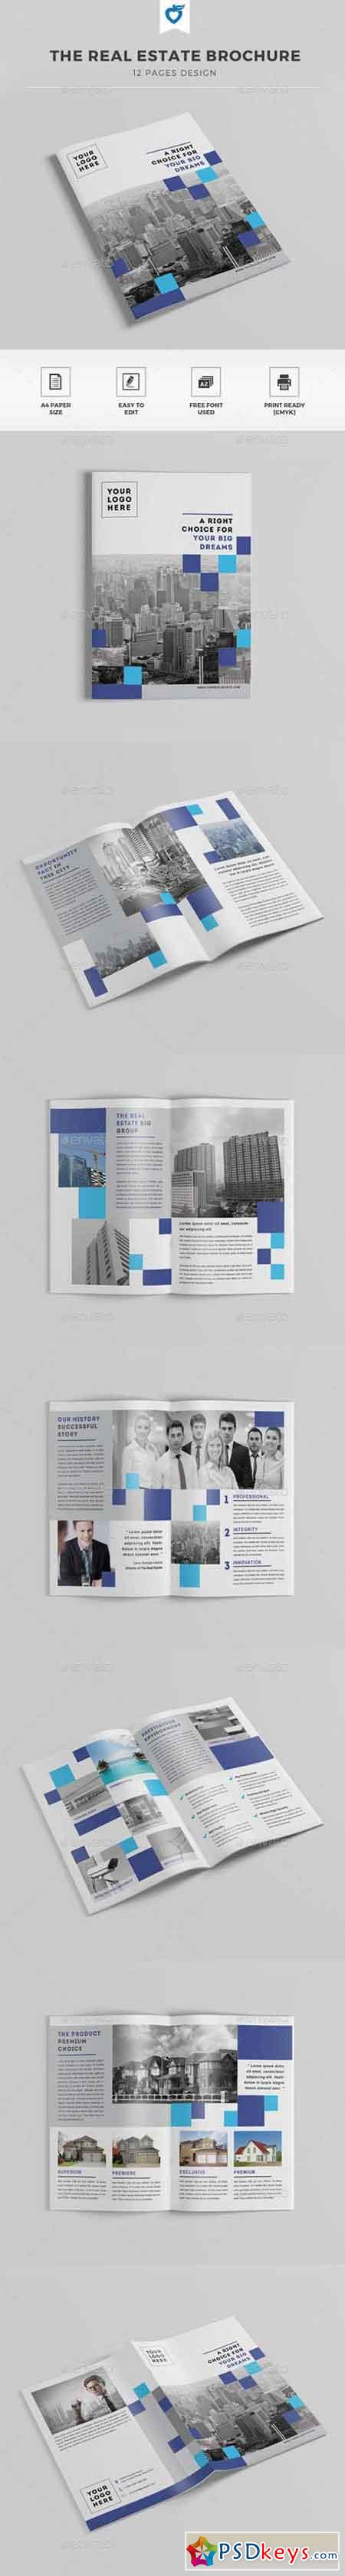 The Real Estate Brochure 11493992